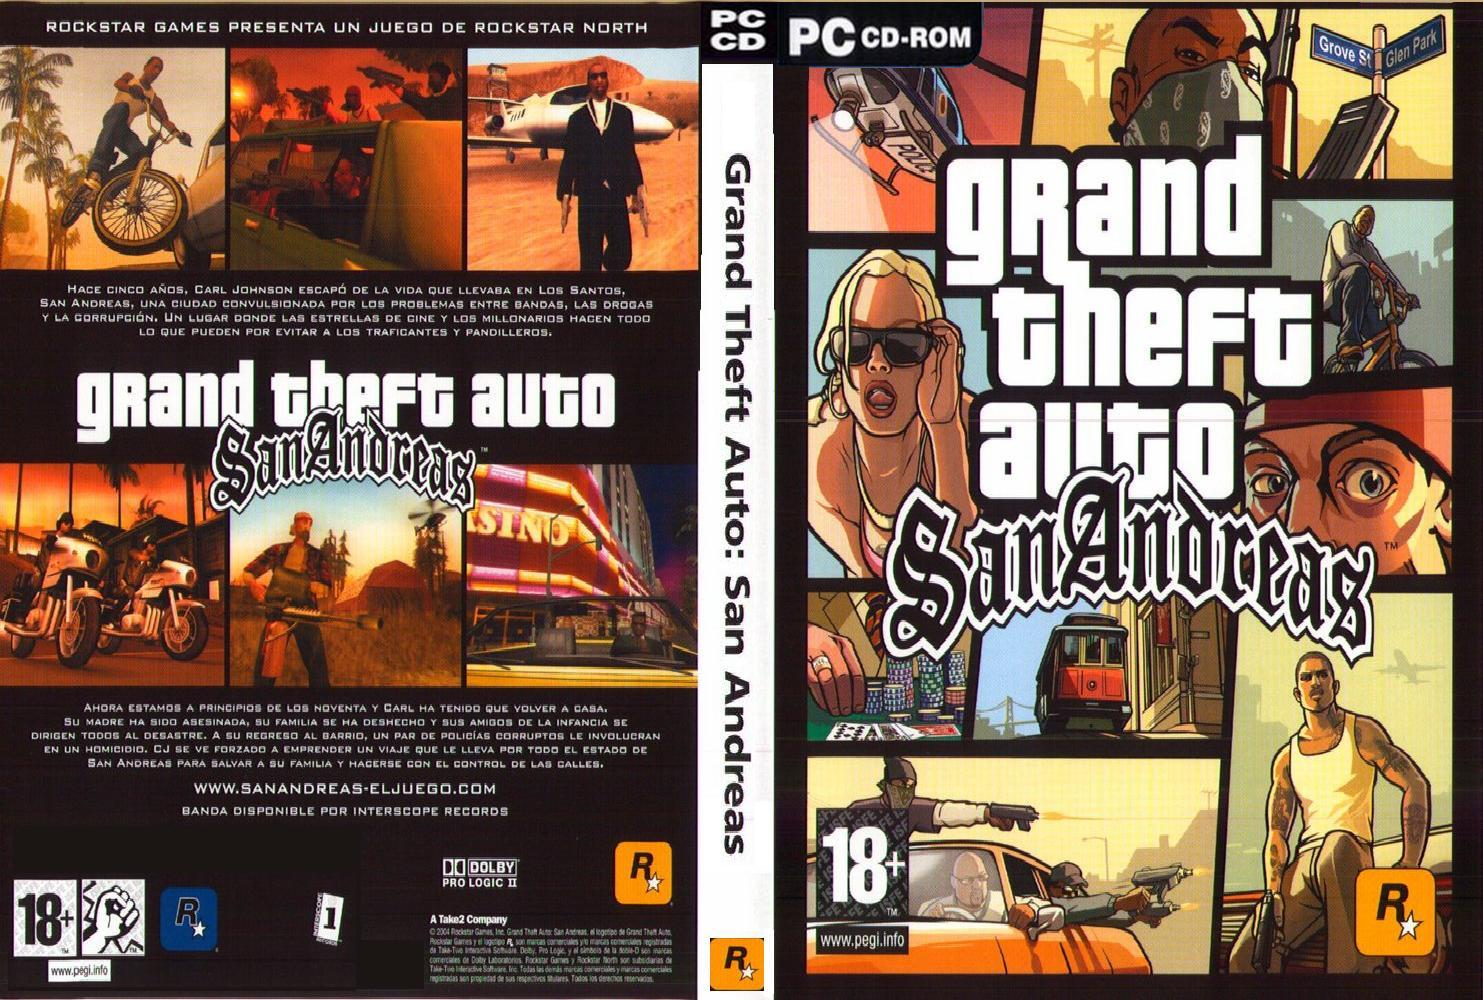 Pics photos grand theft auto iv the law breaking spree continues - Gta 5 Cheat Codes Tricks For Xbox 360 Ps3 Gta 5 Pinterest Grand Theft Auto And Xbox